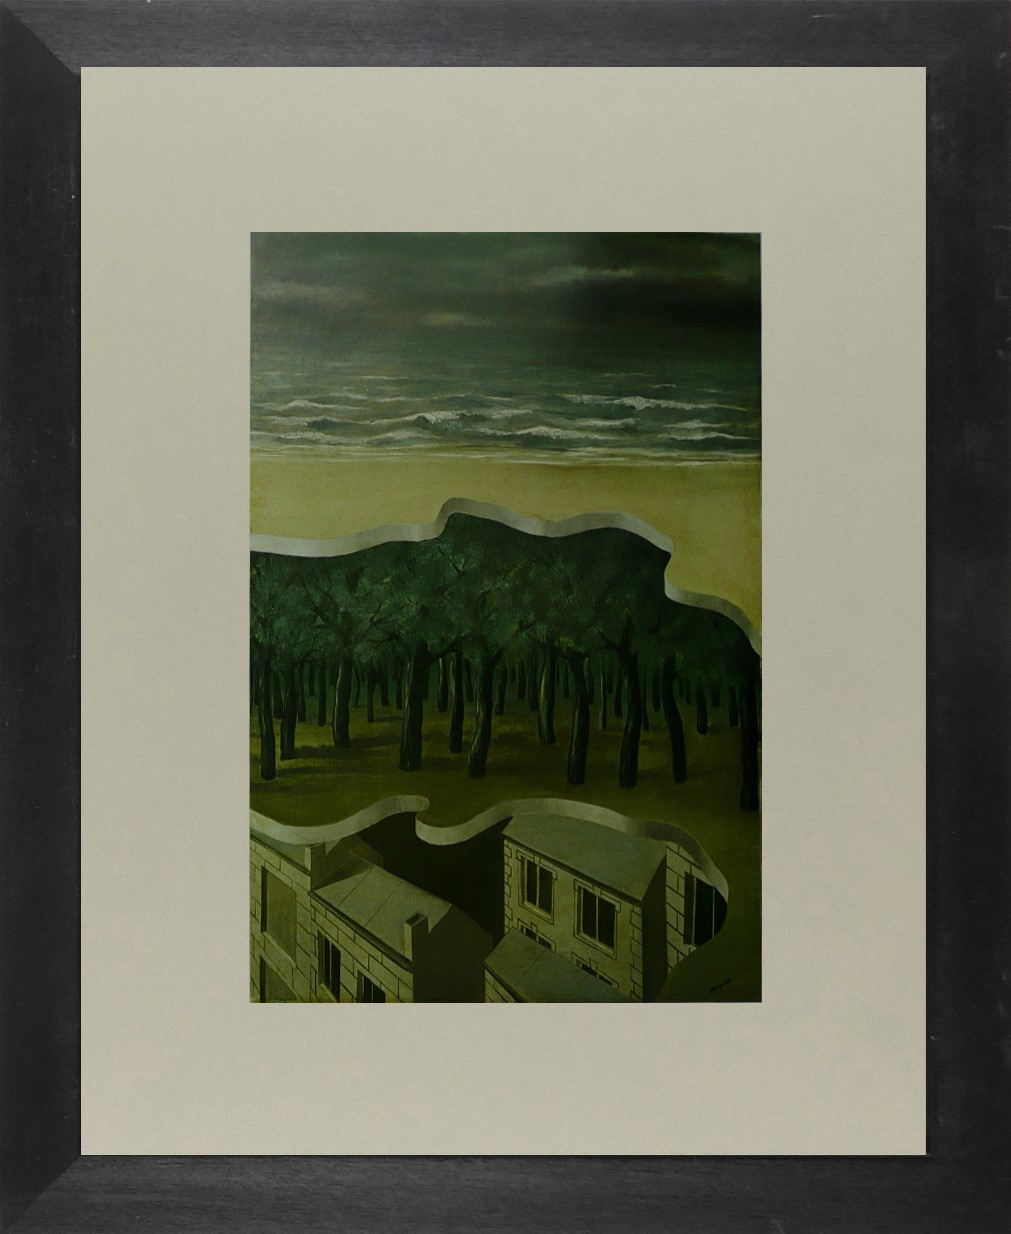 Popular Panorama - Ren Magritte - Framed Picture 11 x 14